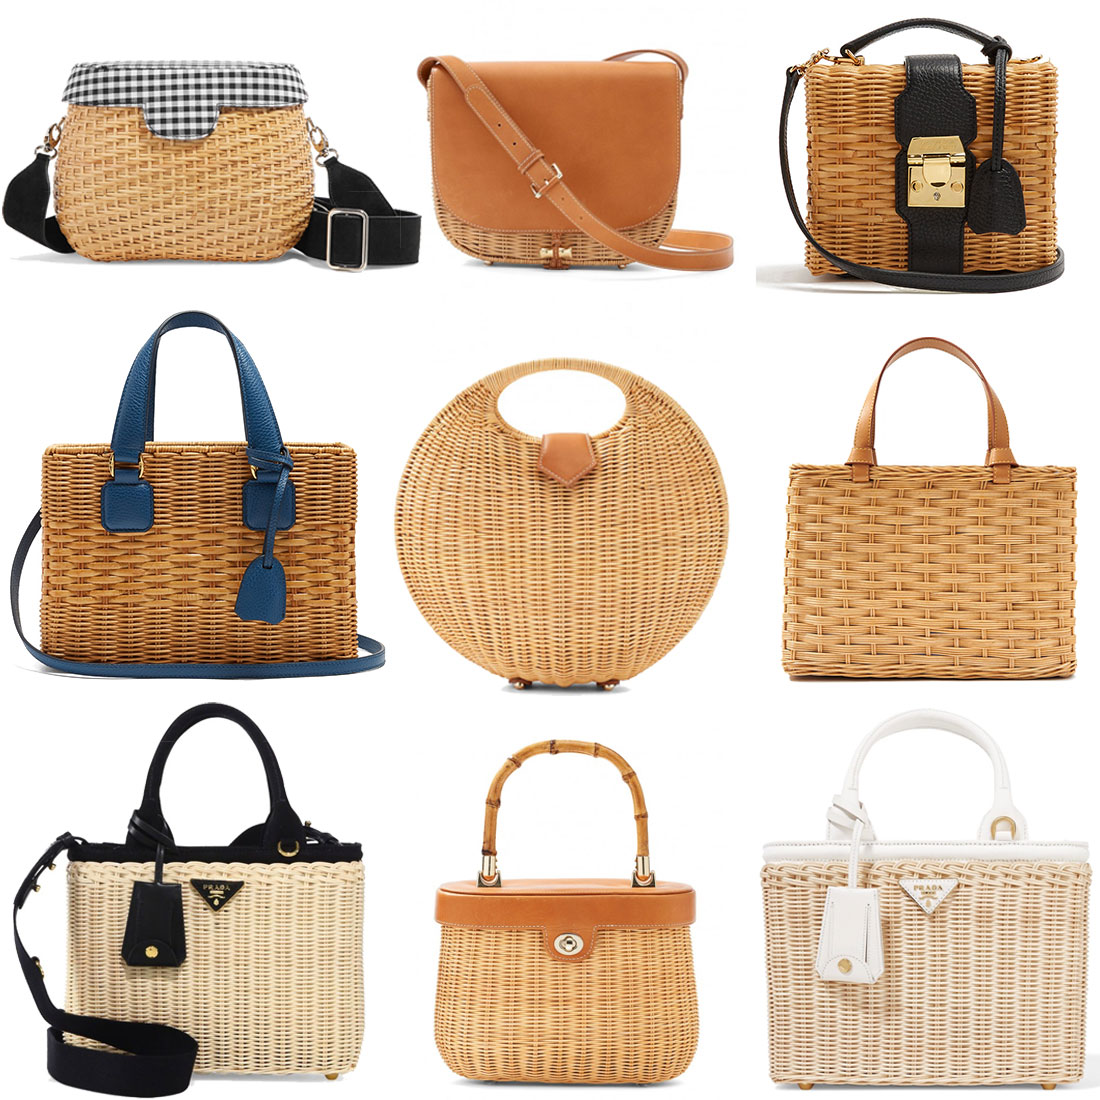 The Charming Basket Bag